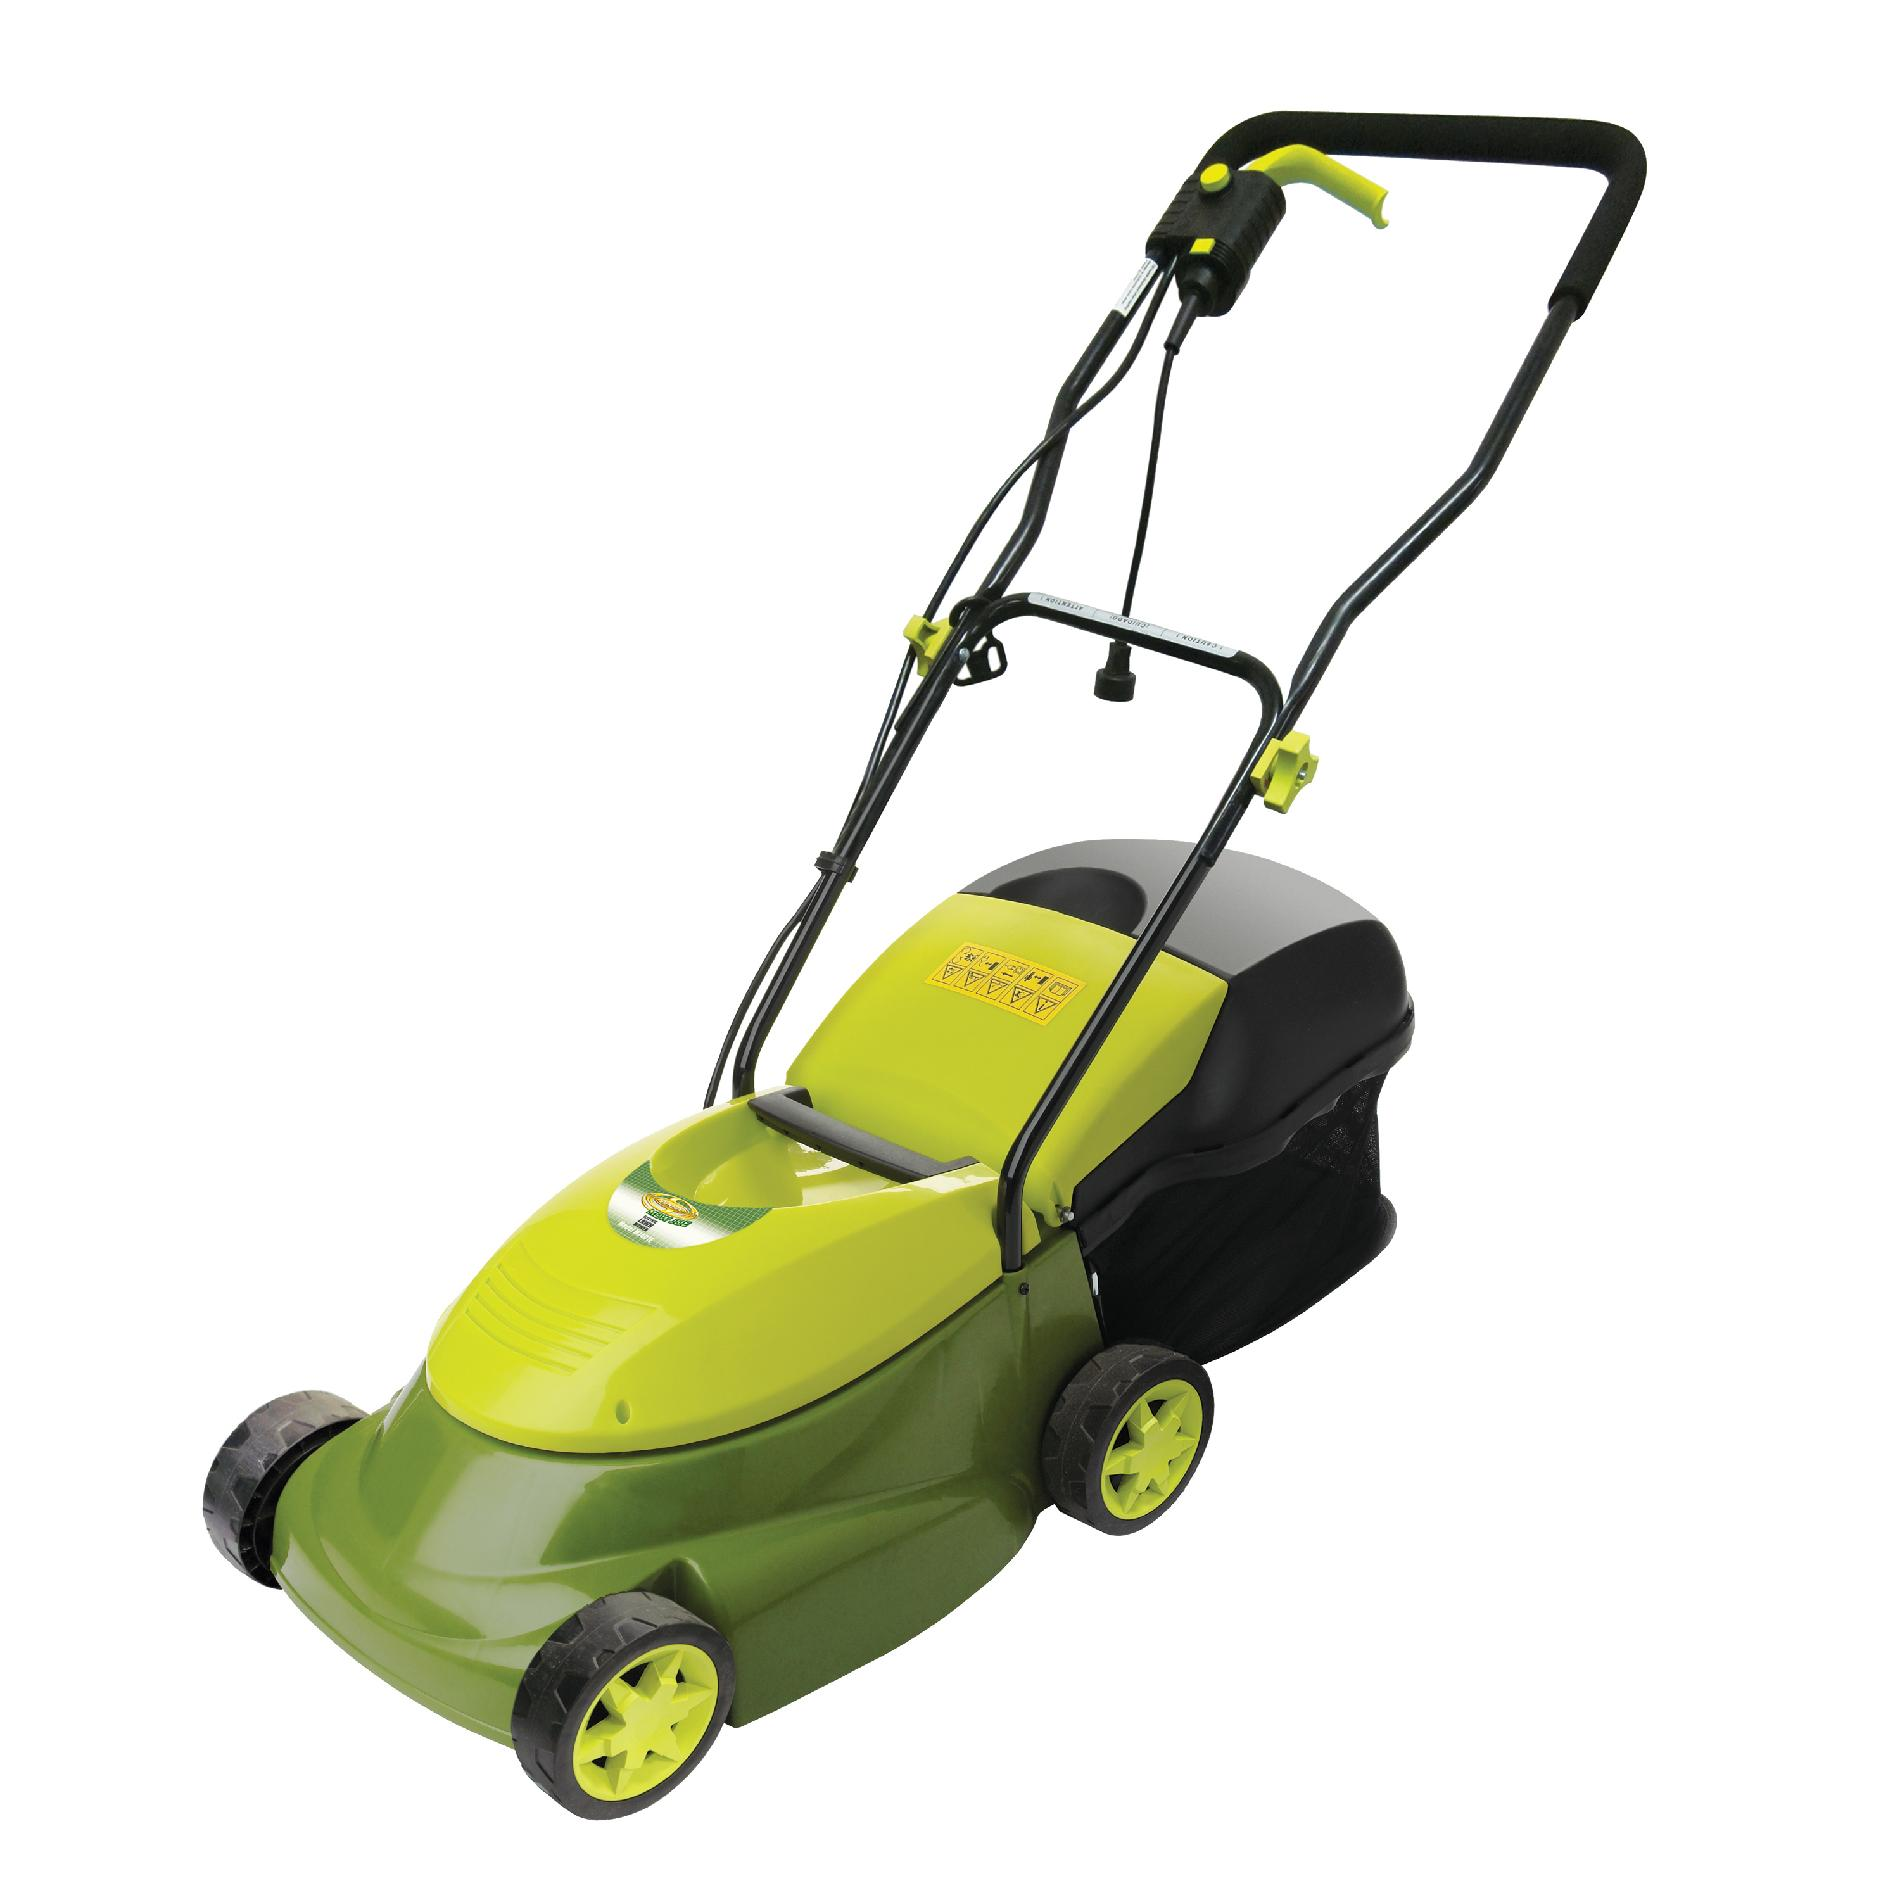 Sun Joe Mow Joe 14-Inch Electric Lawn Mower – MJ401E